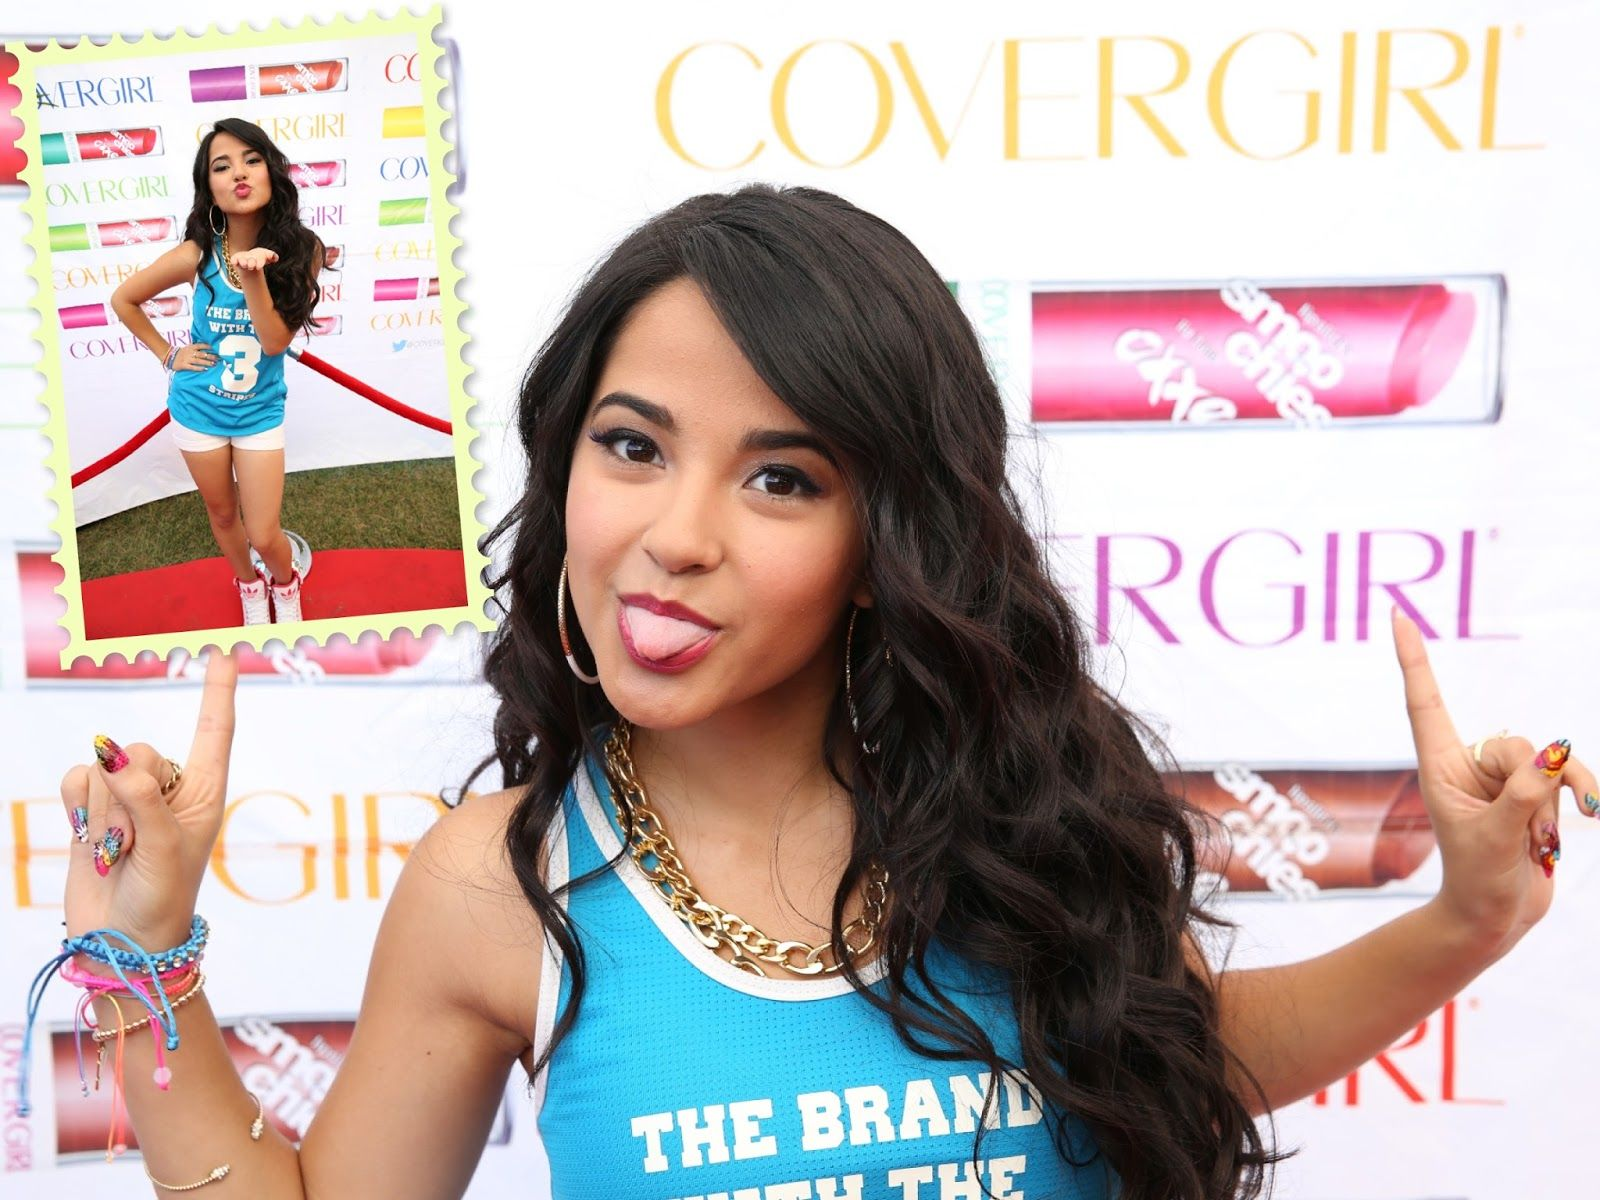 becky g outfits ideas Google Search Becky G outfit ideas